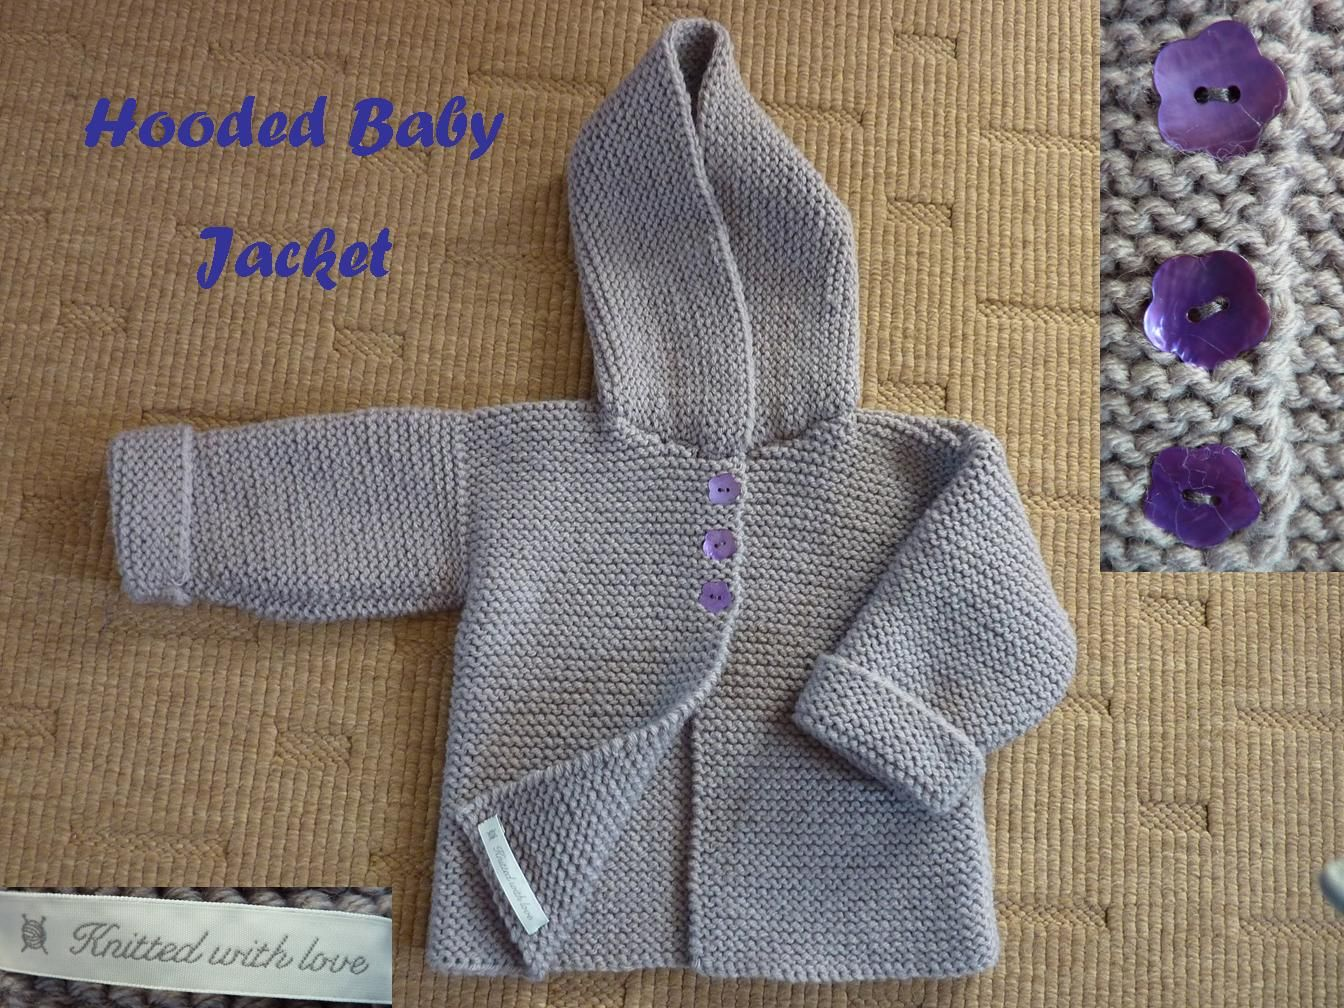 Baby sweater patterns ribbed baby jacket free pattern on baby sweater patterns ribbed baby jacket free pattern on ravelry bankloansurffo Choice Image